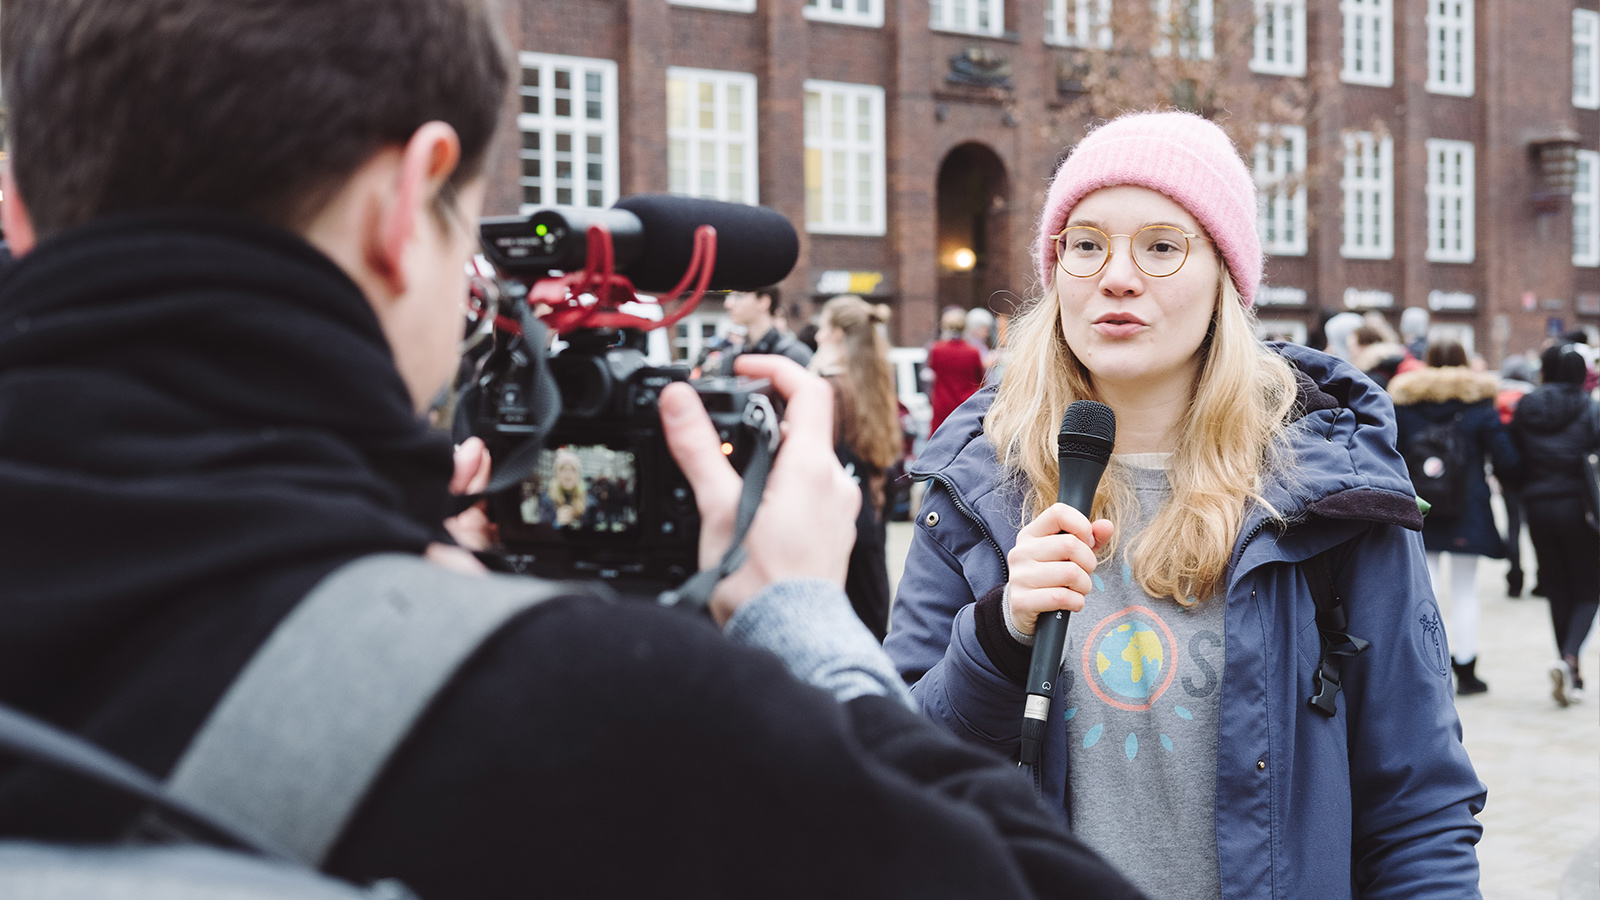 ecosia-joins-climate-strike-march-fridays-for-the-future-greta-thunberg-1